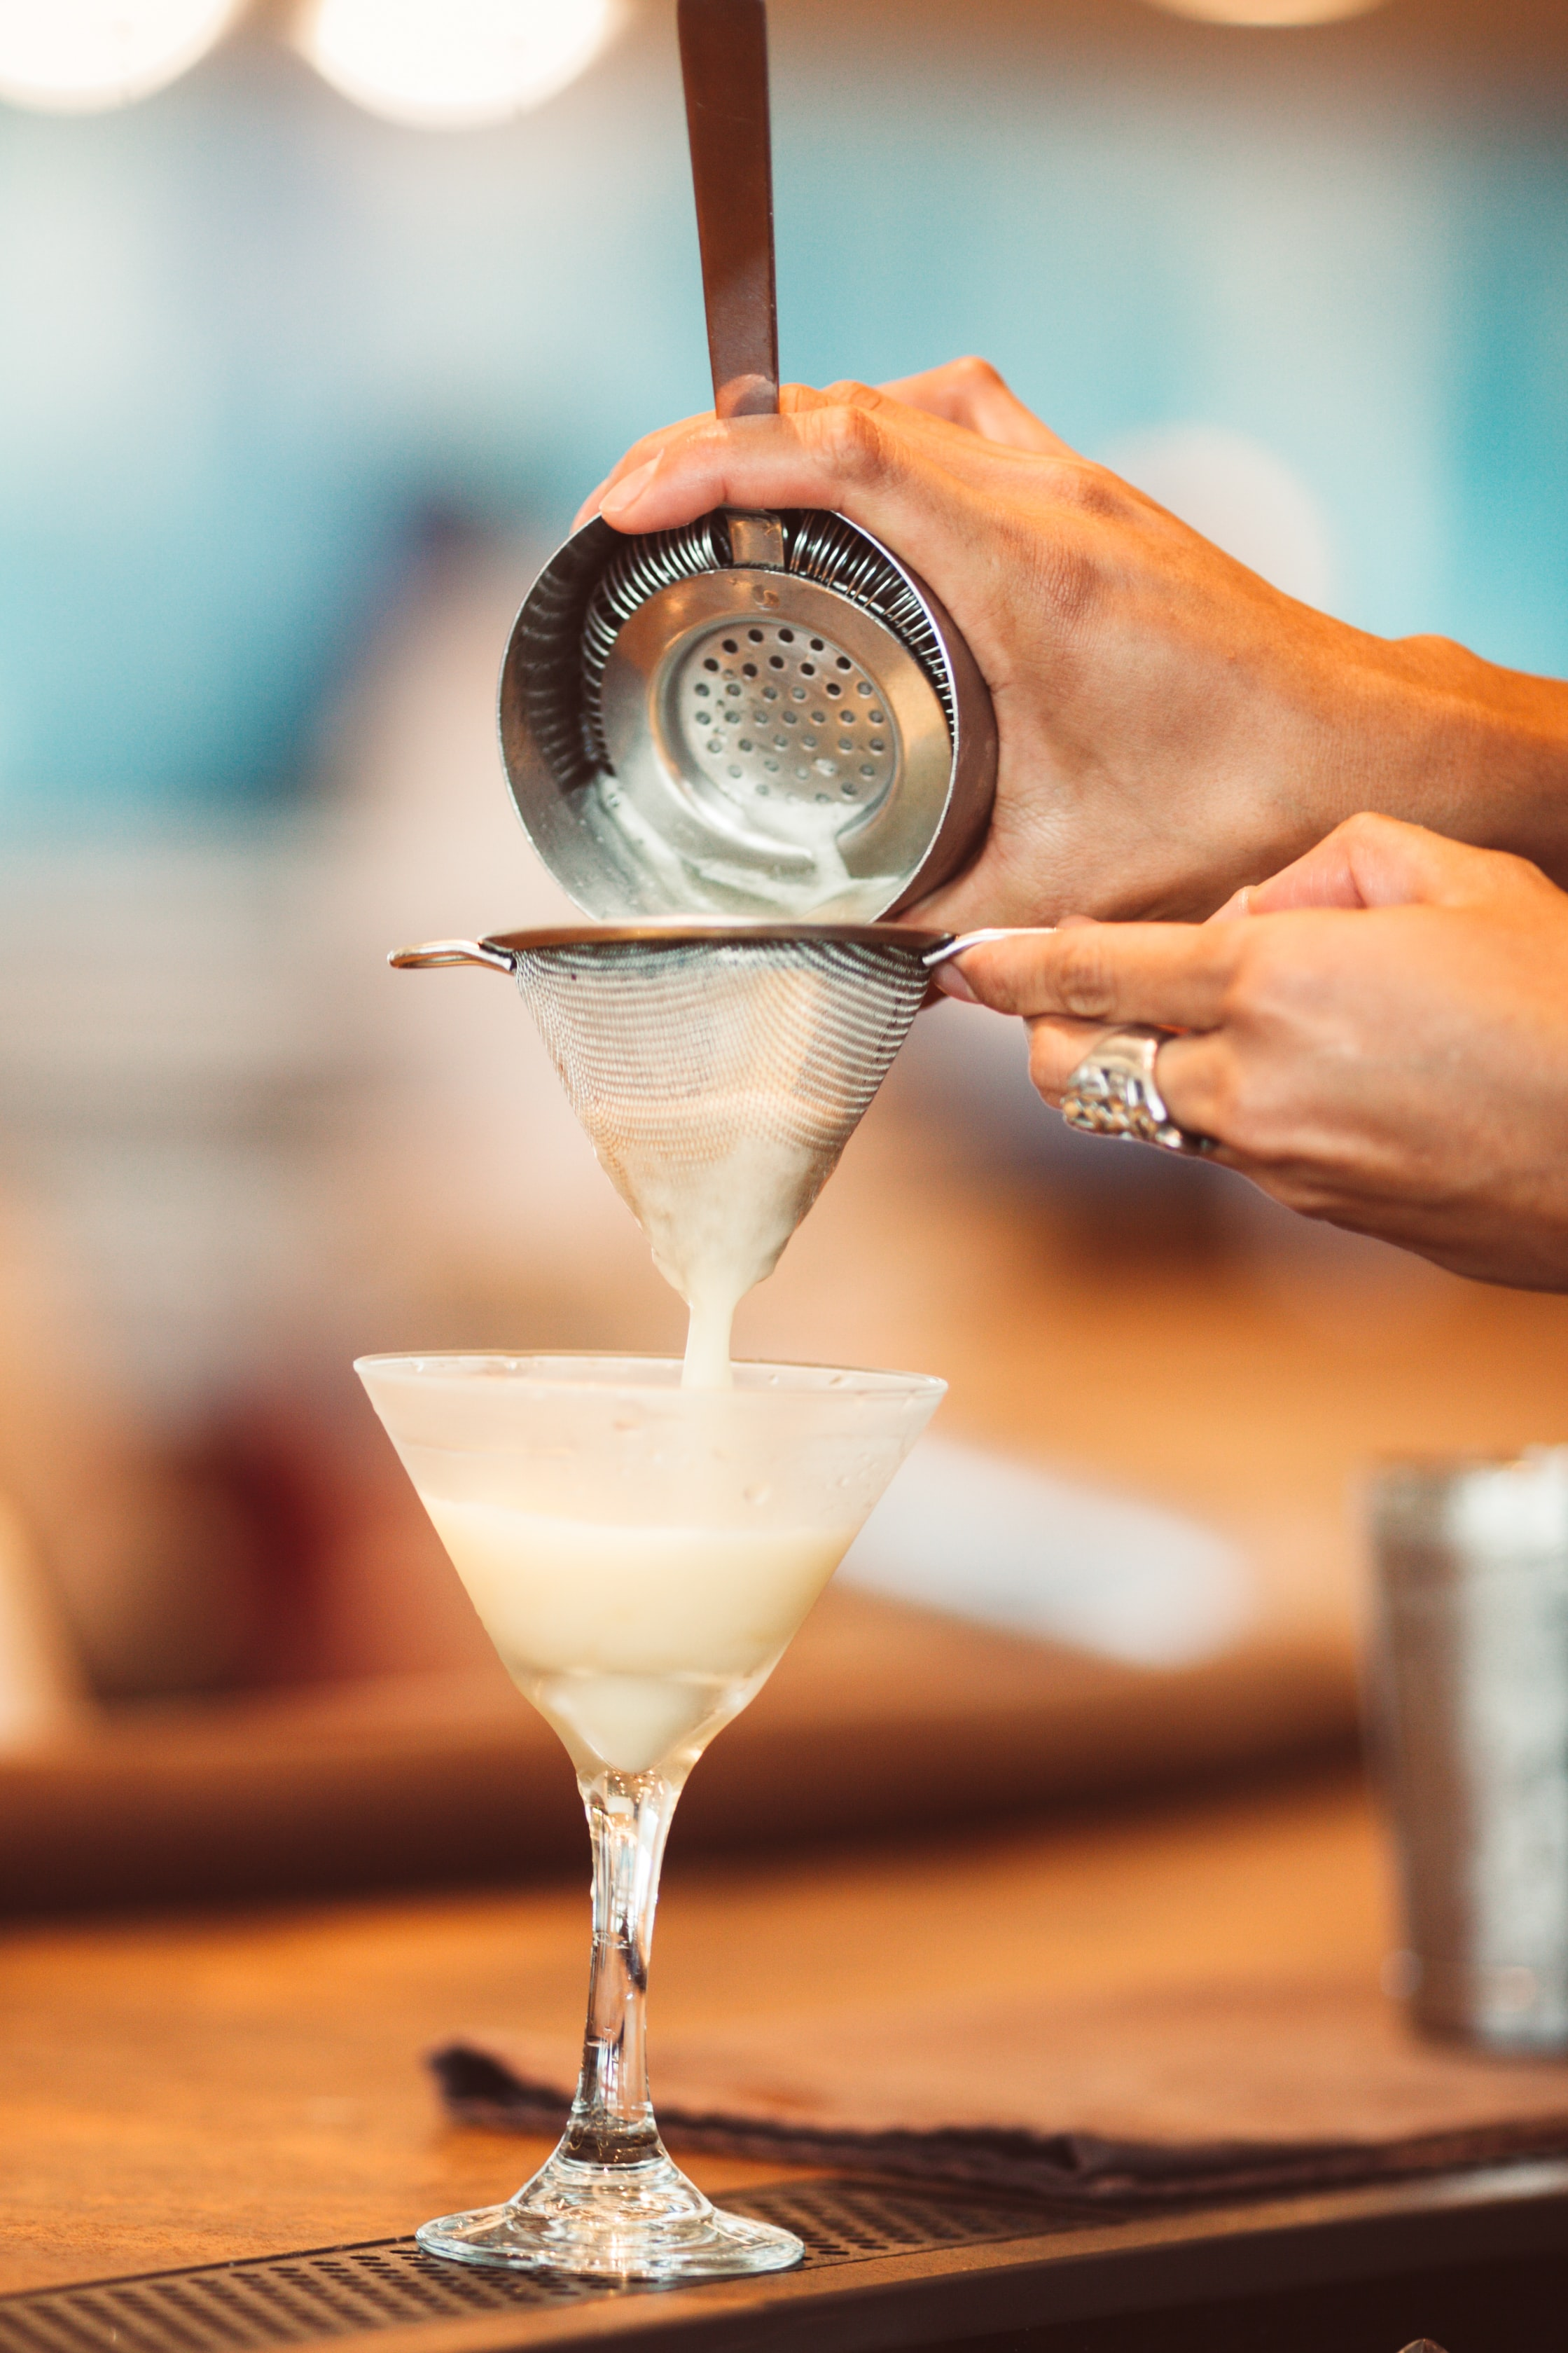 person holding container pouring white liquid on martini glass